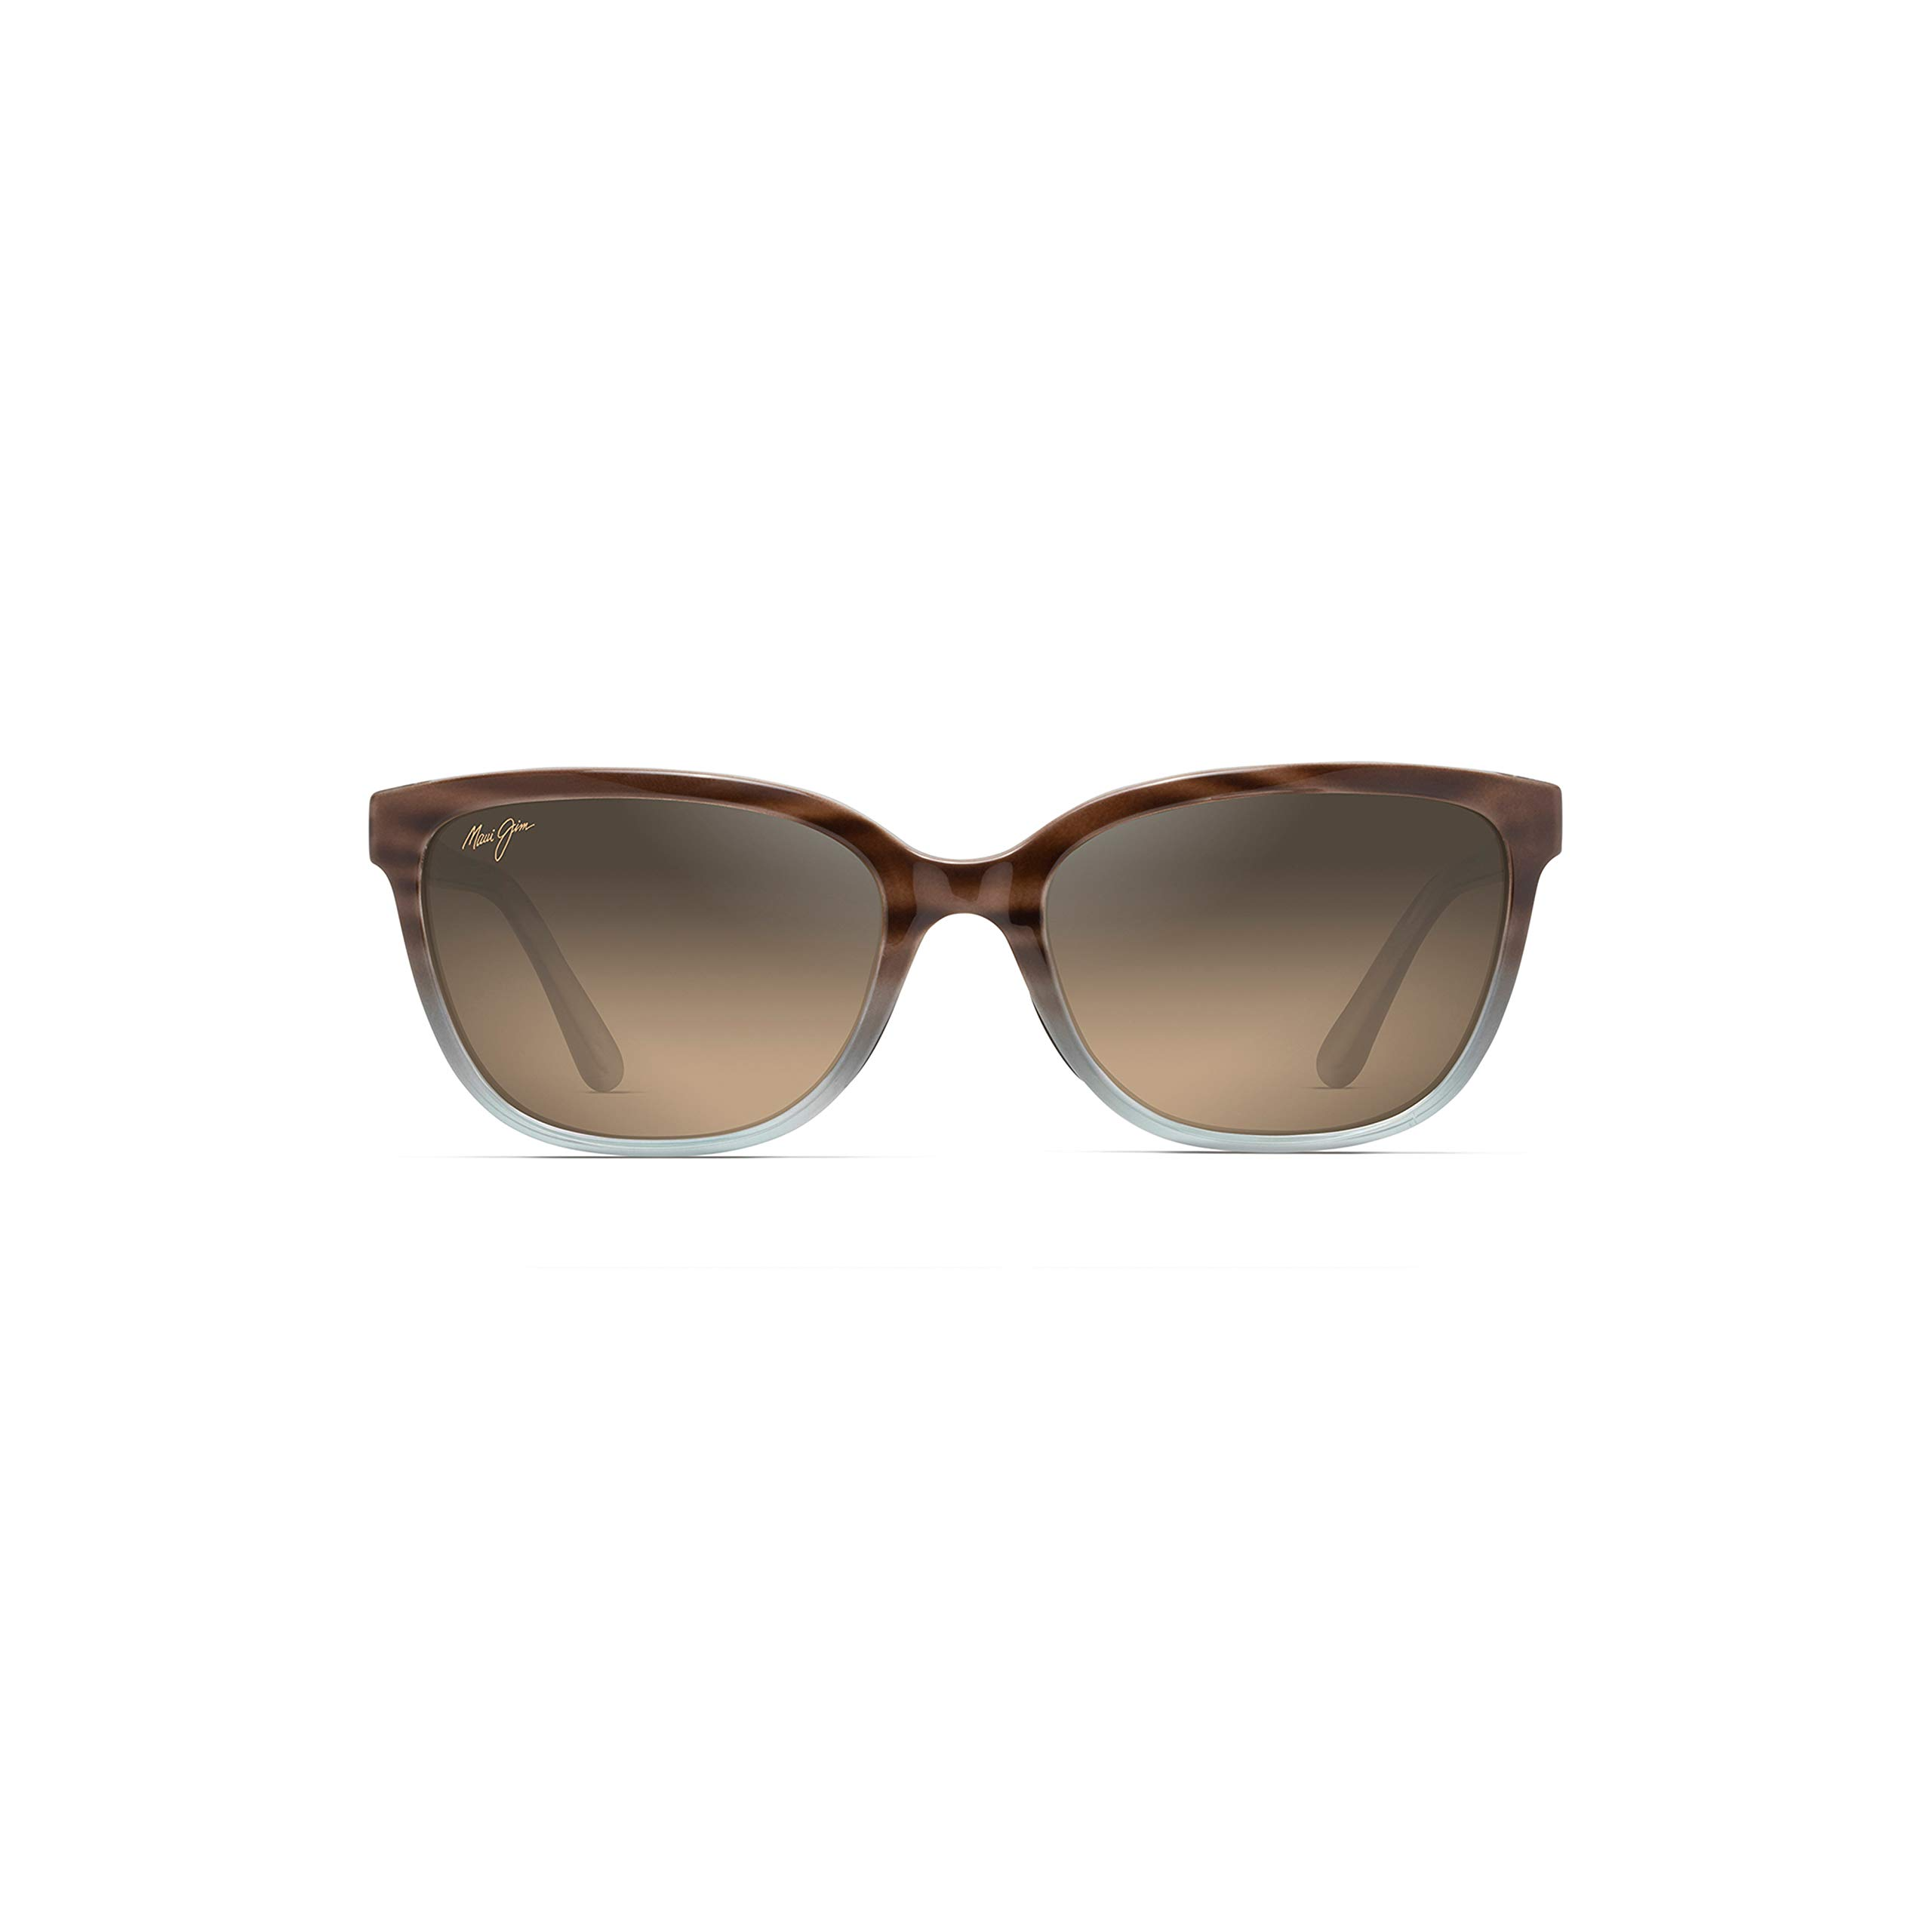 ویکالا · خرید  اصل اورجینال · خرید از آمازون · Maui Jim Sunglasses | Honi HS758-22B Sunset Cat Eye Frame, Polarized Maui Rose Lenses, with Patented PolarizedPlus2 Lens Technology wekala · ویکالا